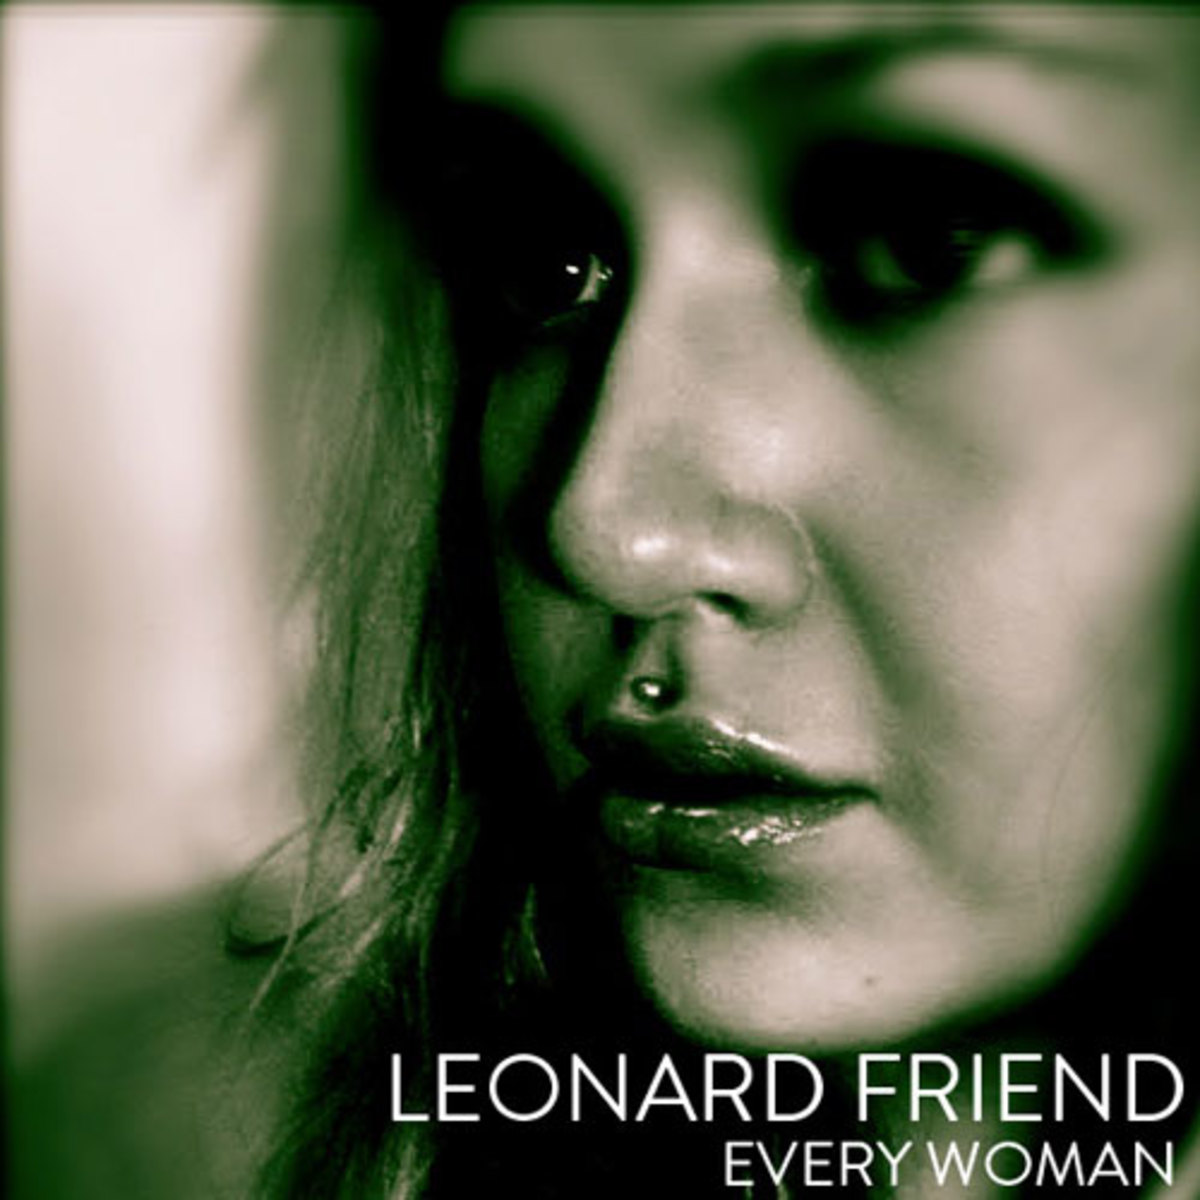 leonardfriend-everywoman.jpg